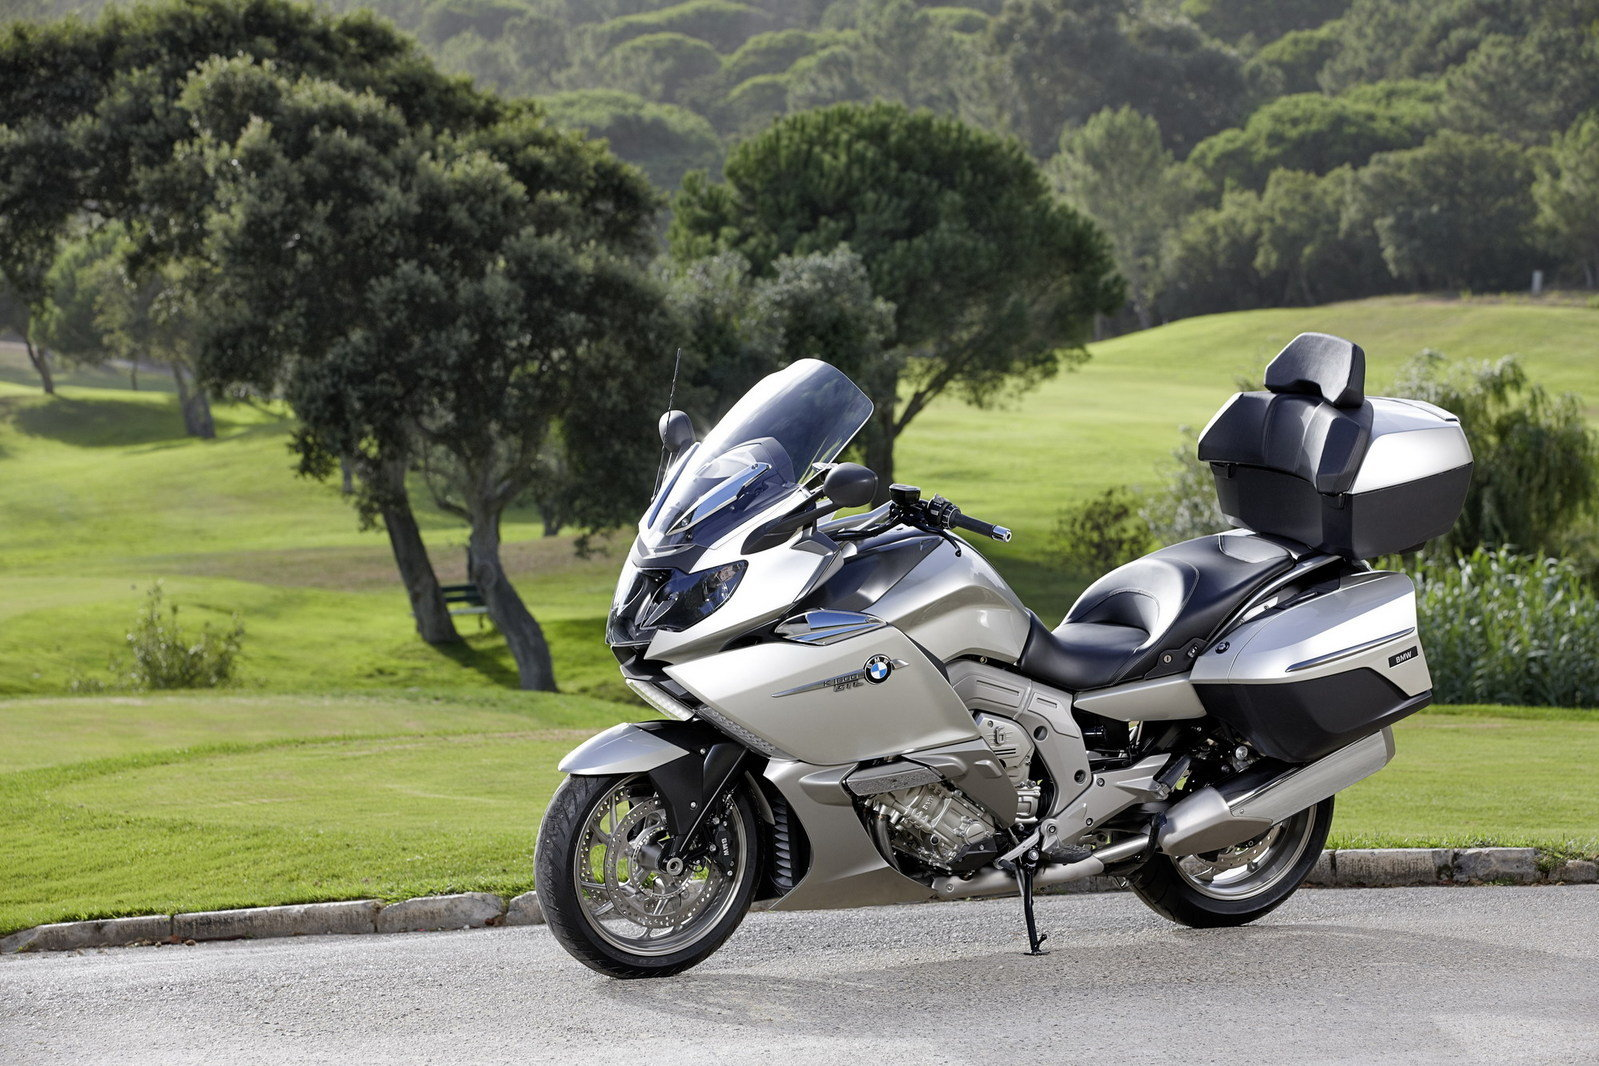 2012 bmw k 1600 gt and k 1600 gtl picture 376662 motorcycle review top speed. Black Bedroom Furniture Sets. Home Design Ideas